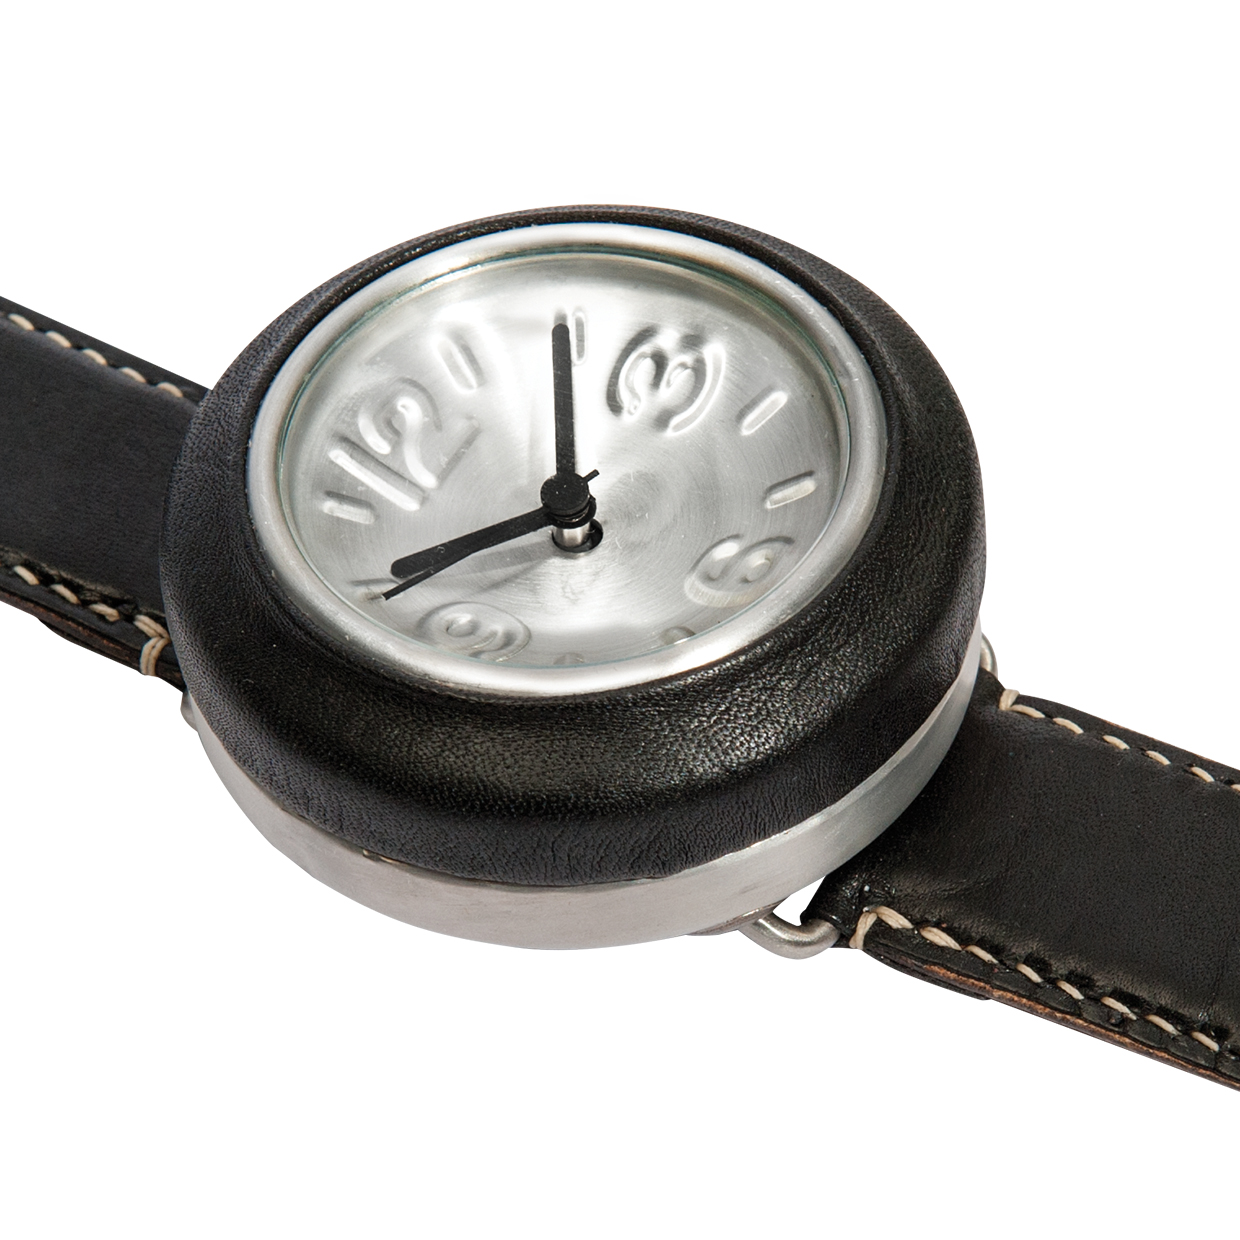 CAN_WATCH_L_black_pers